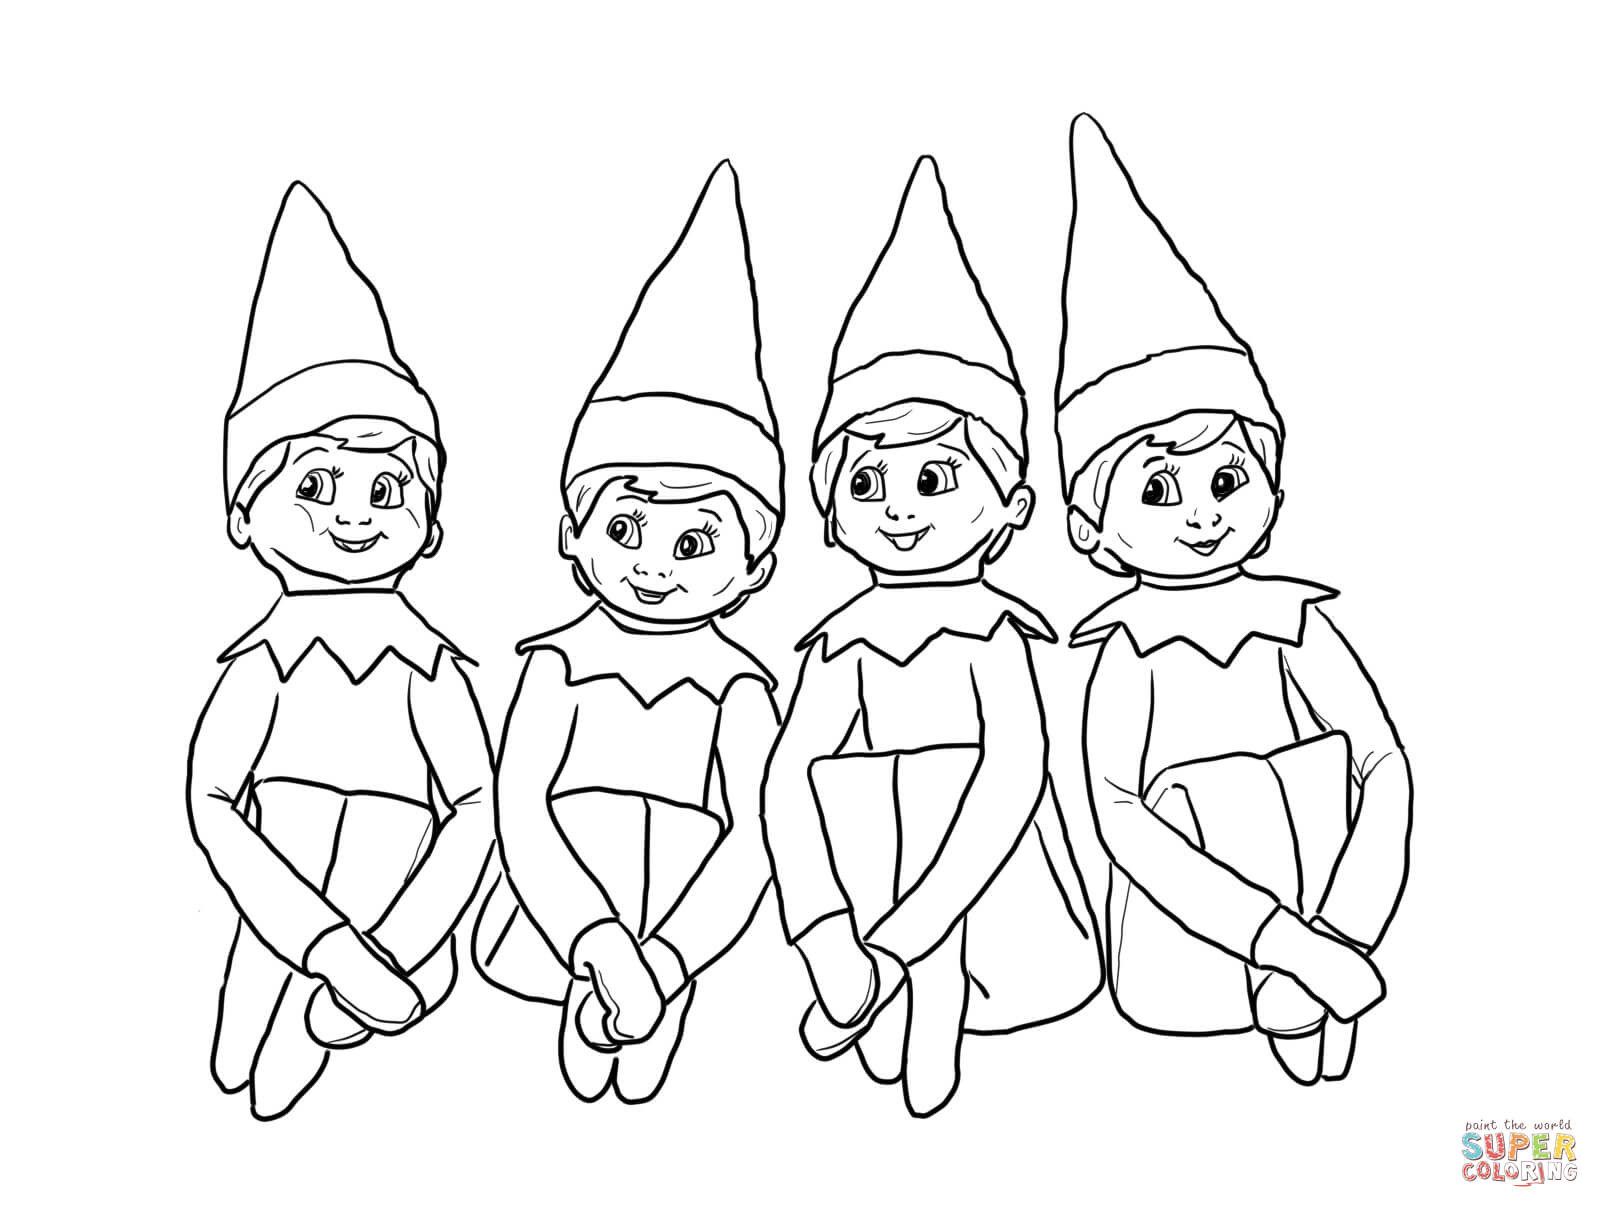 Santa And His Elves Coloring Pages With Elf Sheets 2 6 Wordsare Me